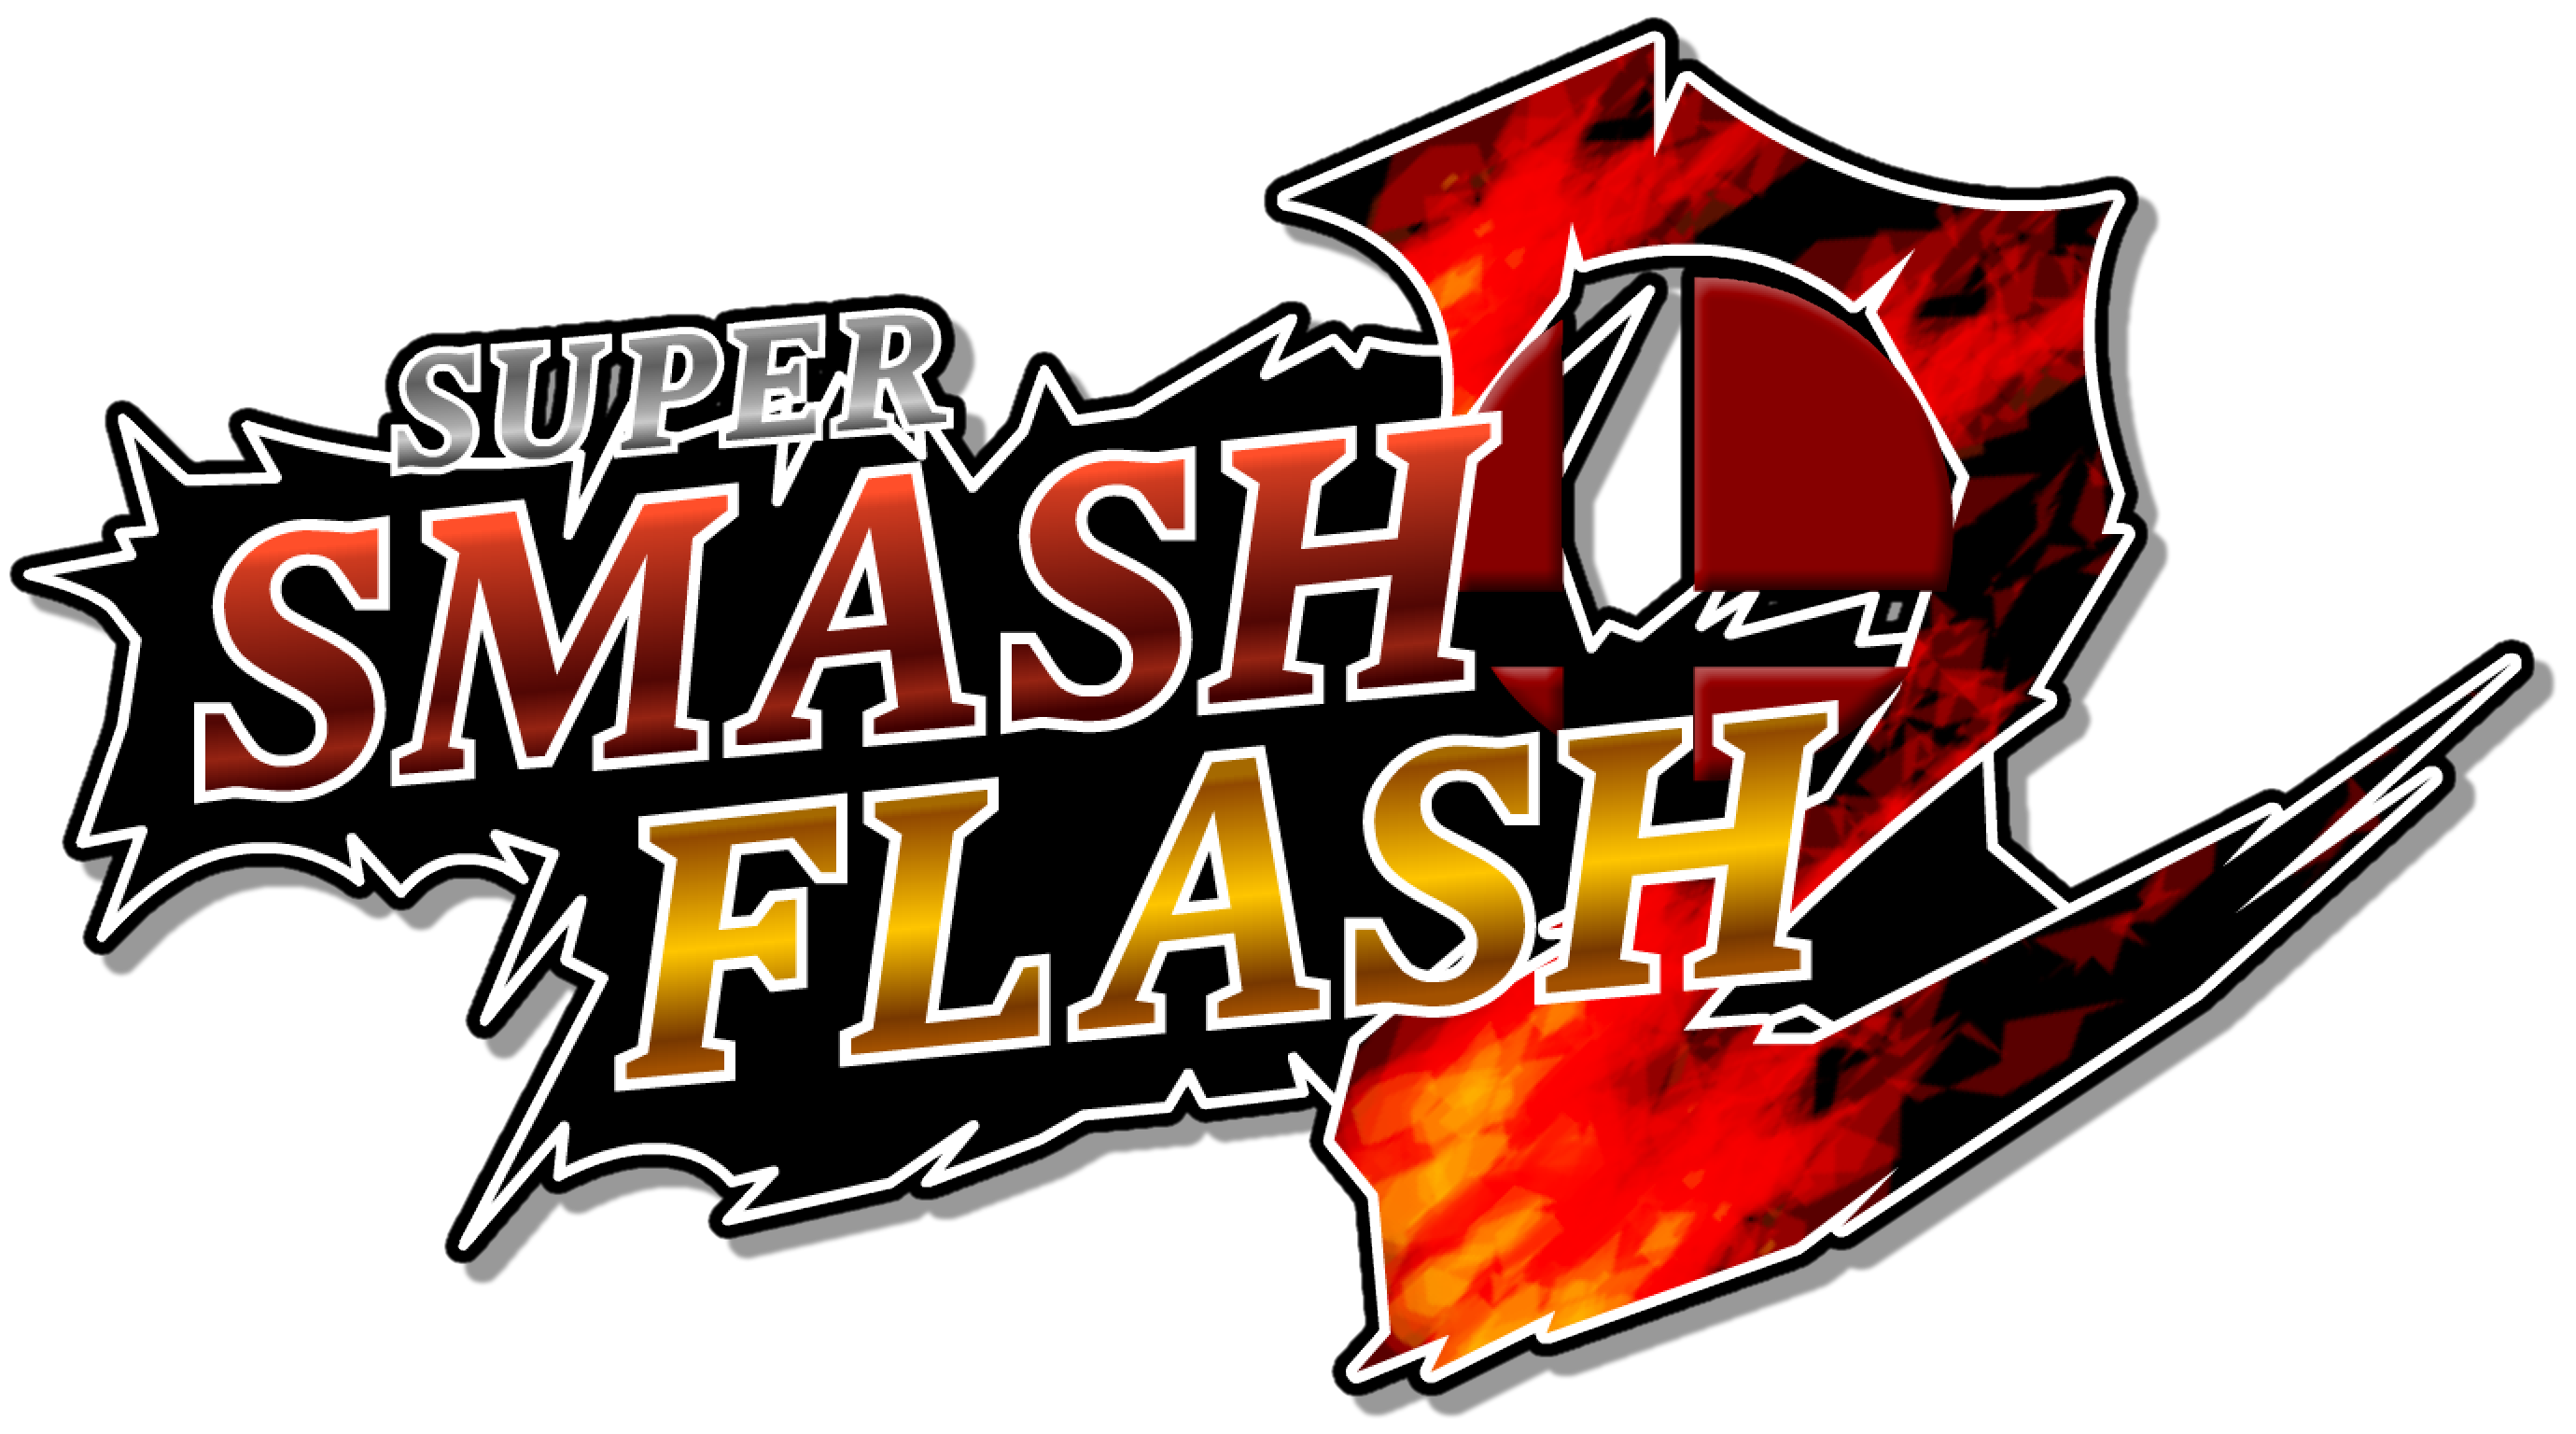 super smash flash 2 wiidatabase